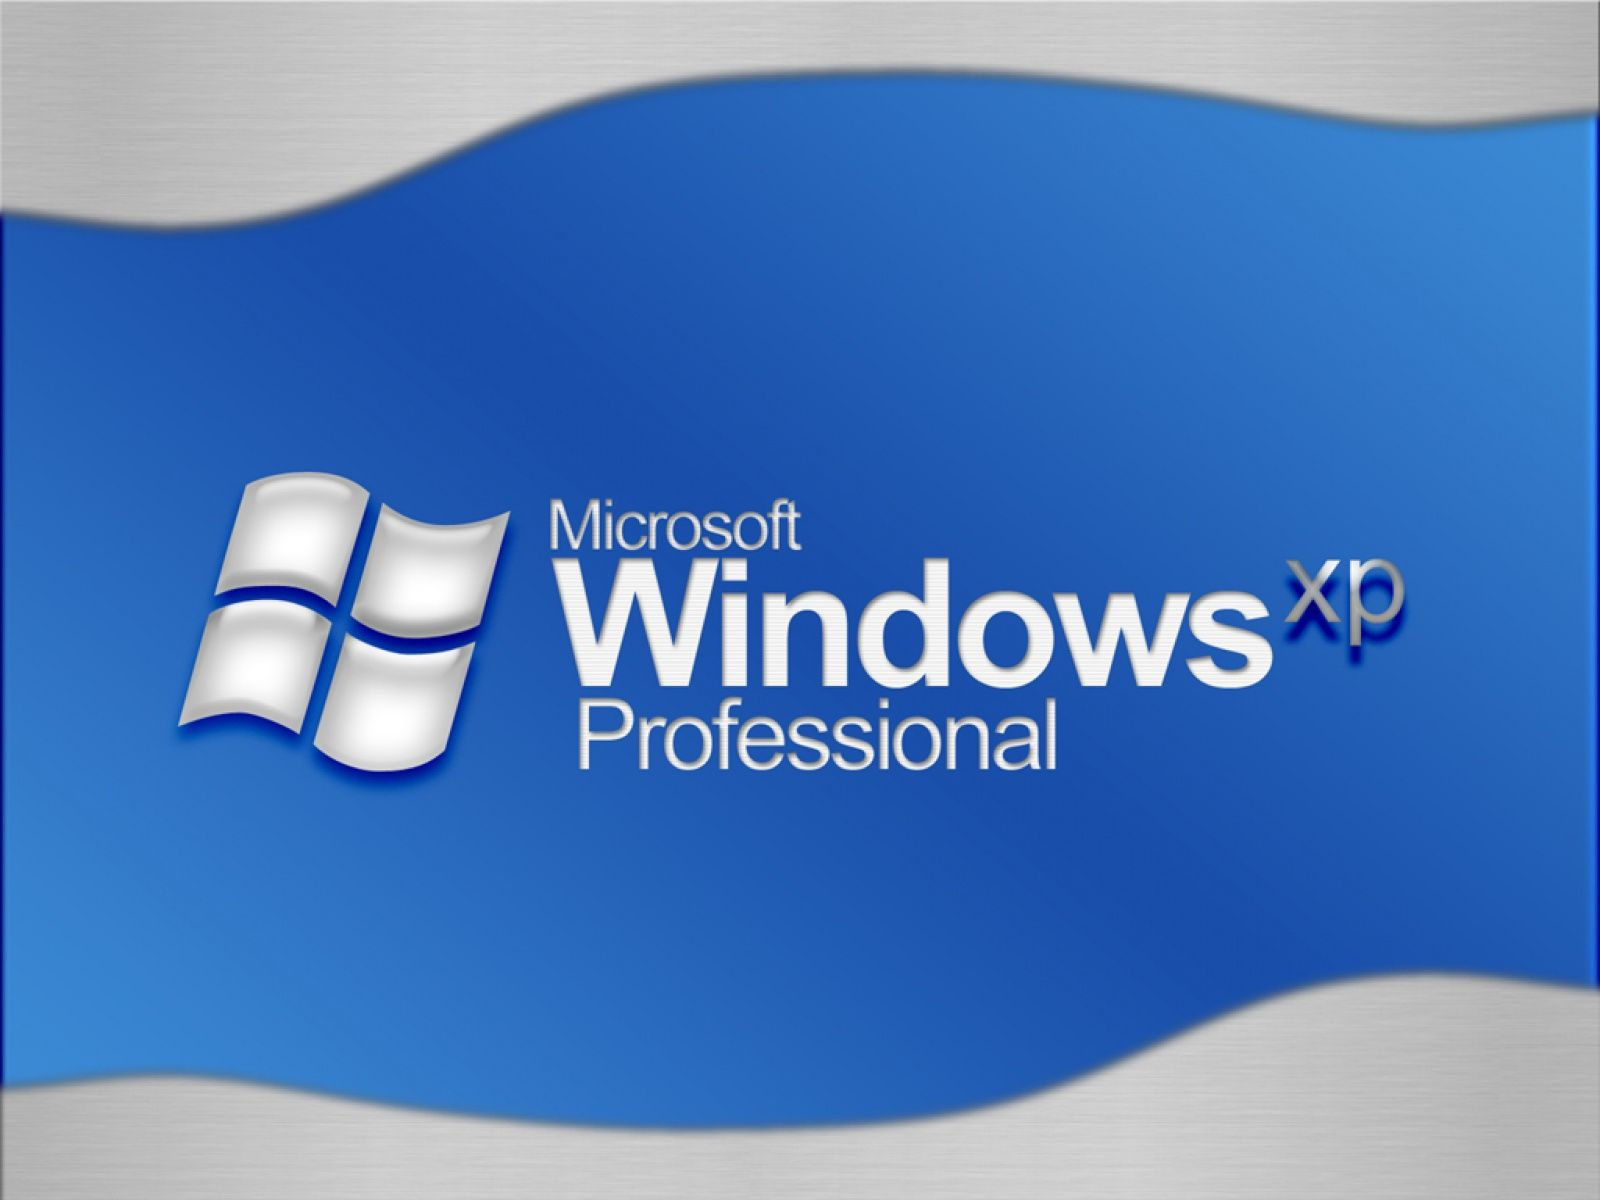 free windows xp download from microsoft